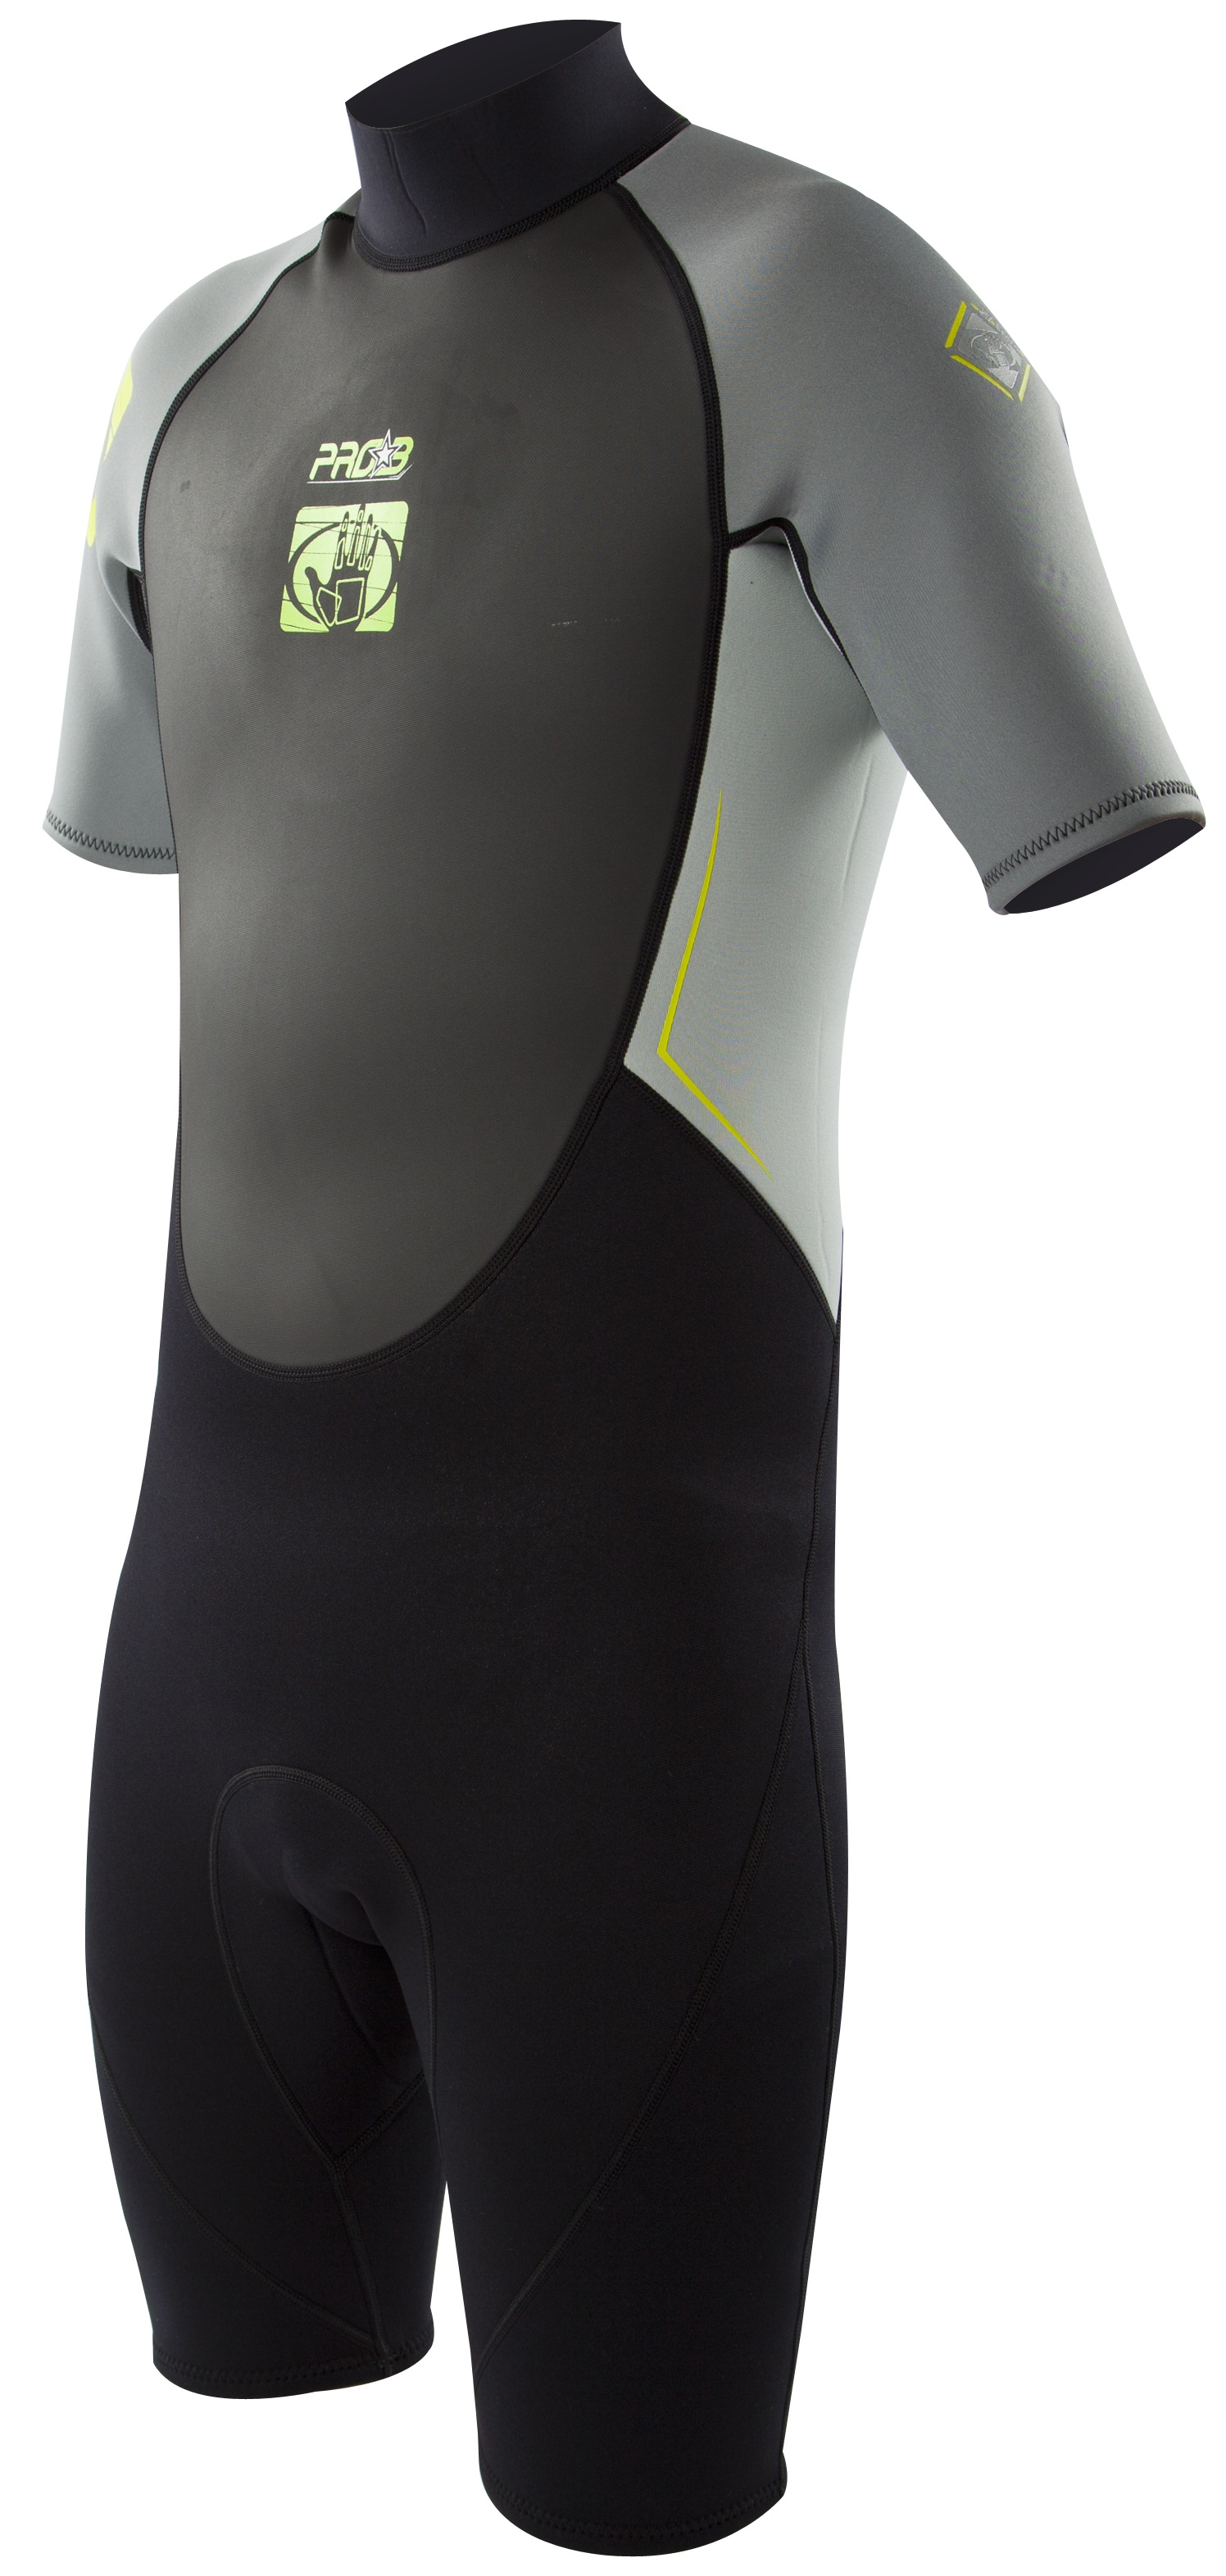 Body Glove Men's Pro3 2/1mm Springsuit Wetsuit - Black/Grey/Lime -